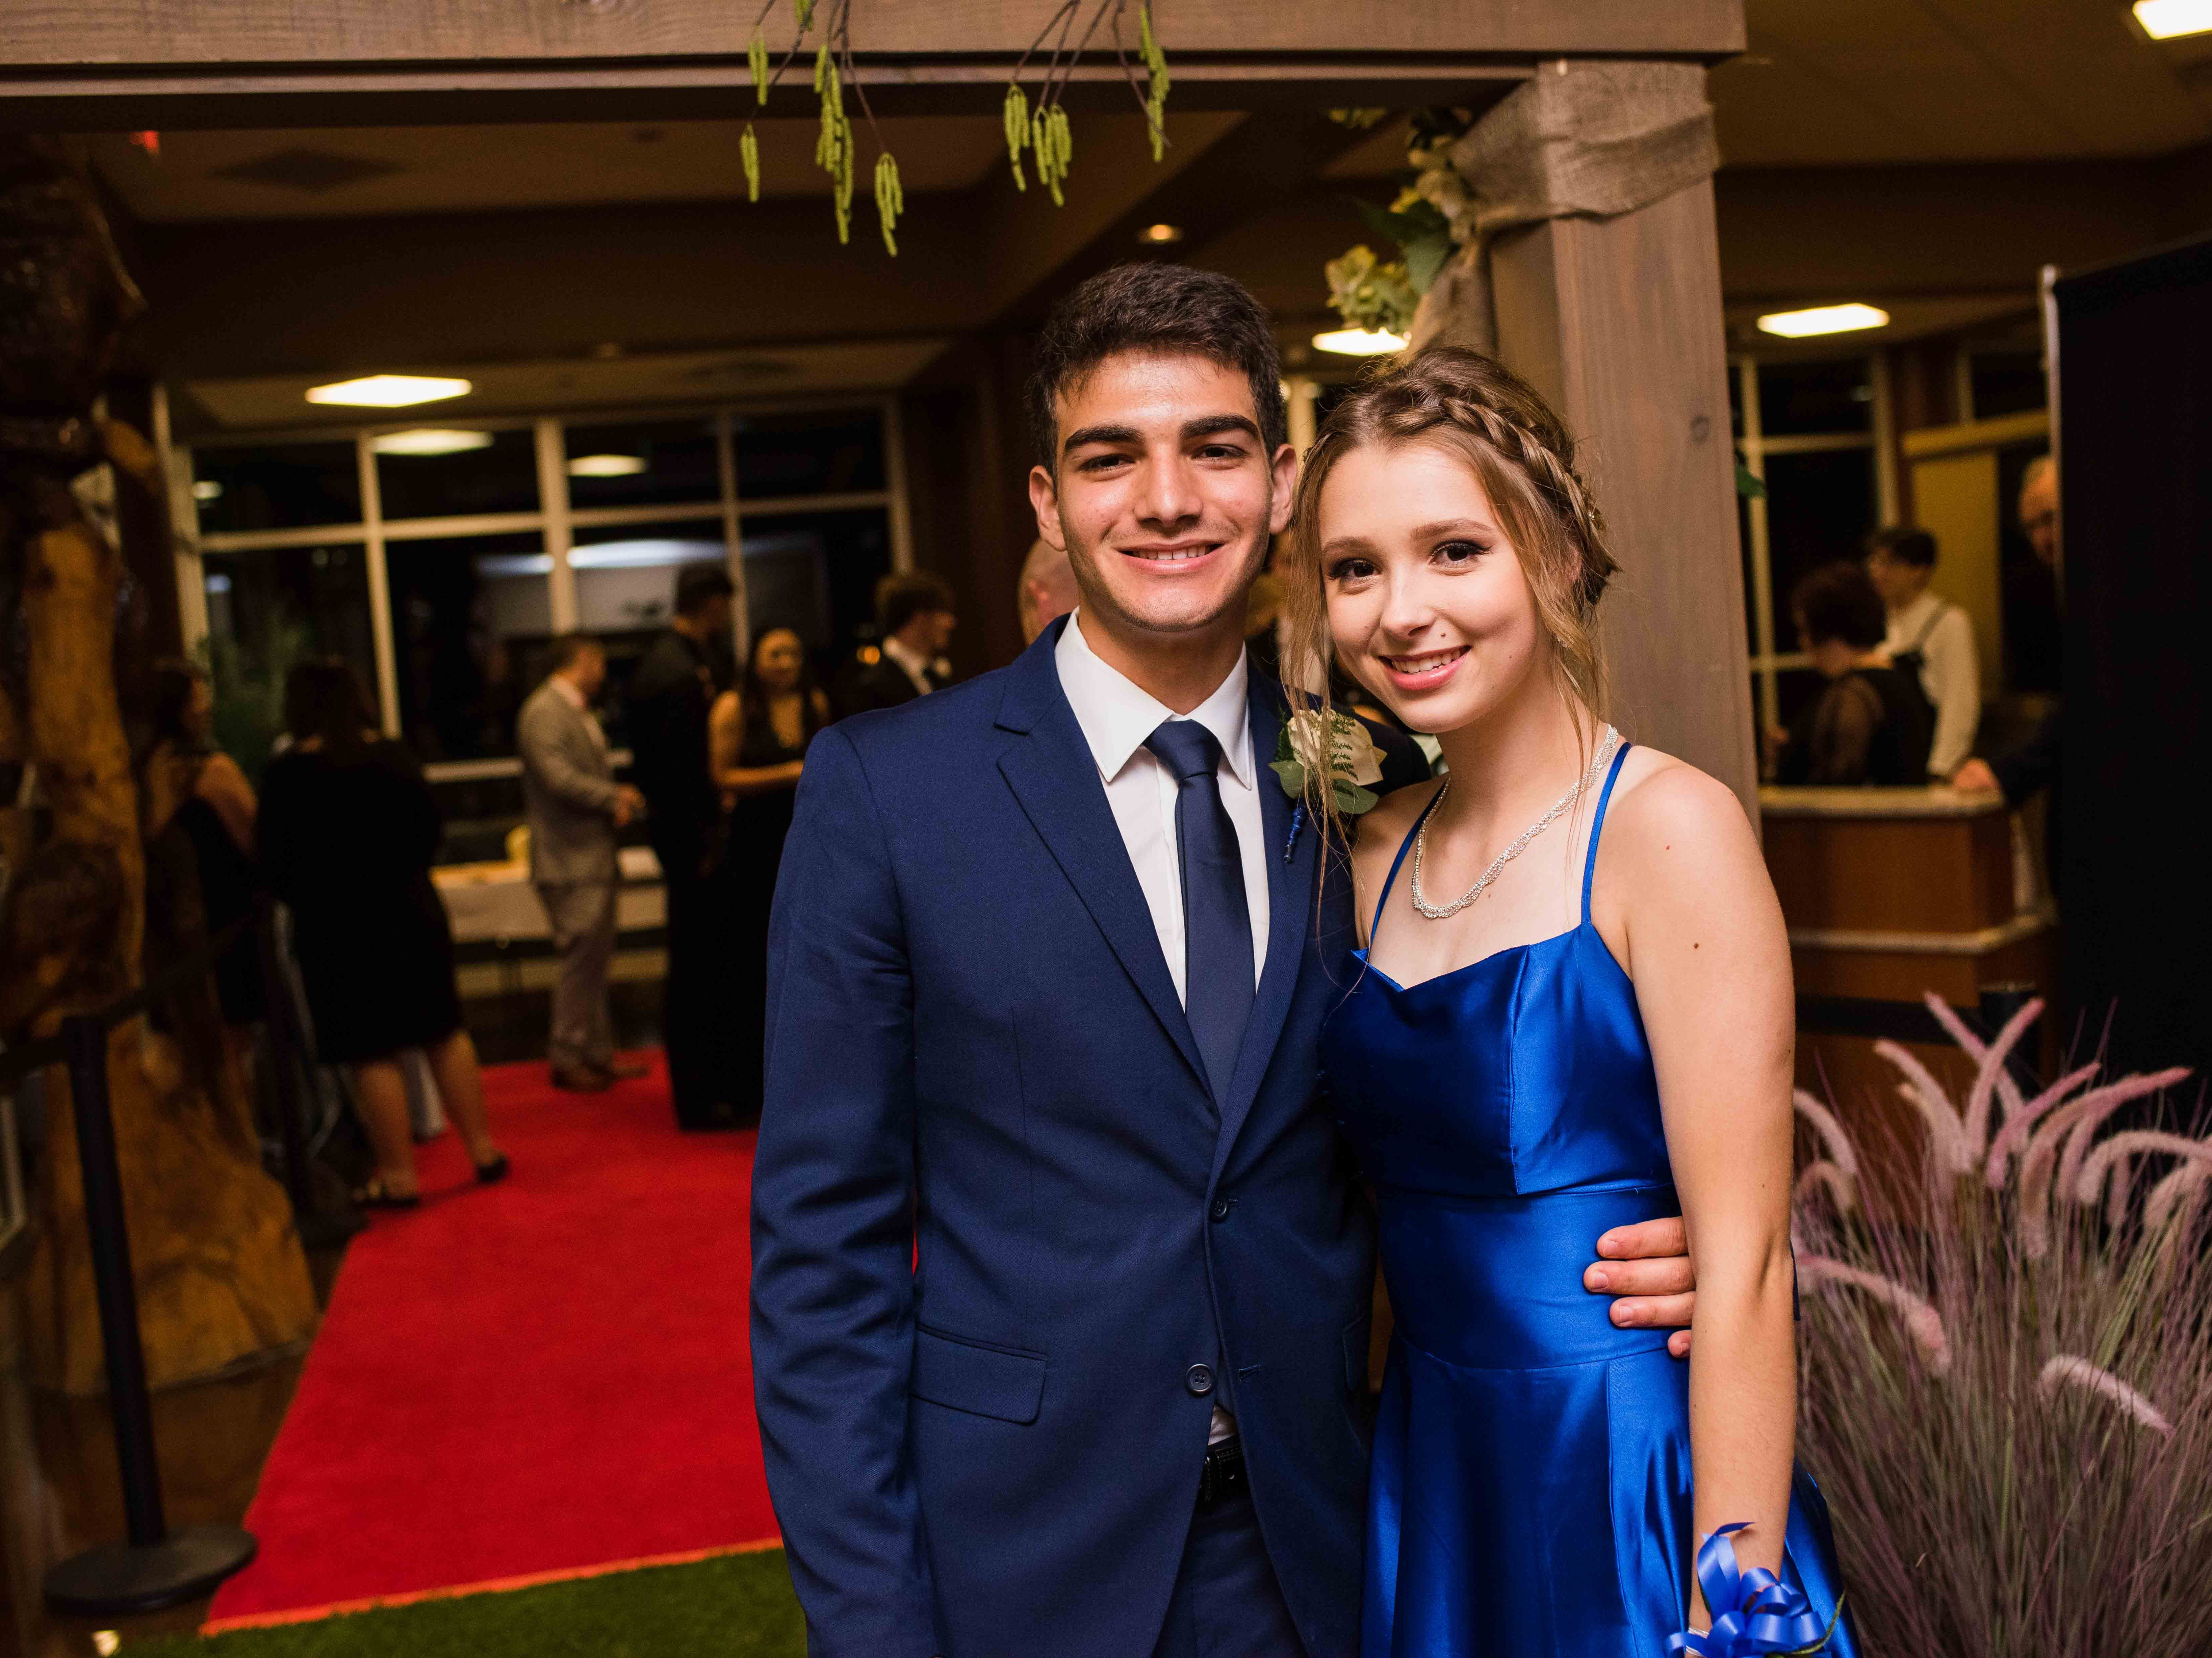 Thiago Nogueira and Gabby Kowalski at Rossview High School prom Saturday night at Valor Hall in Oak Grove, Ky.